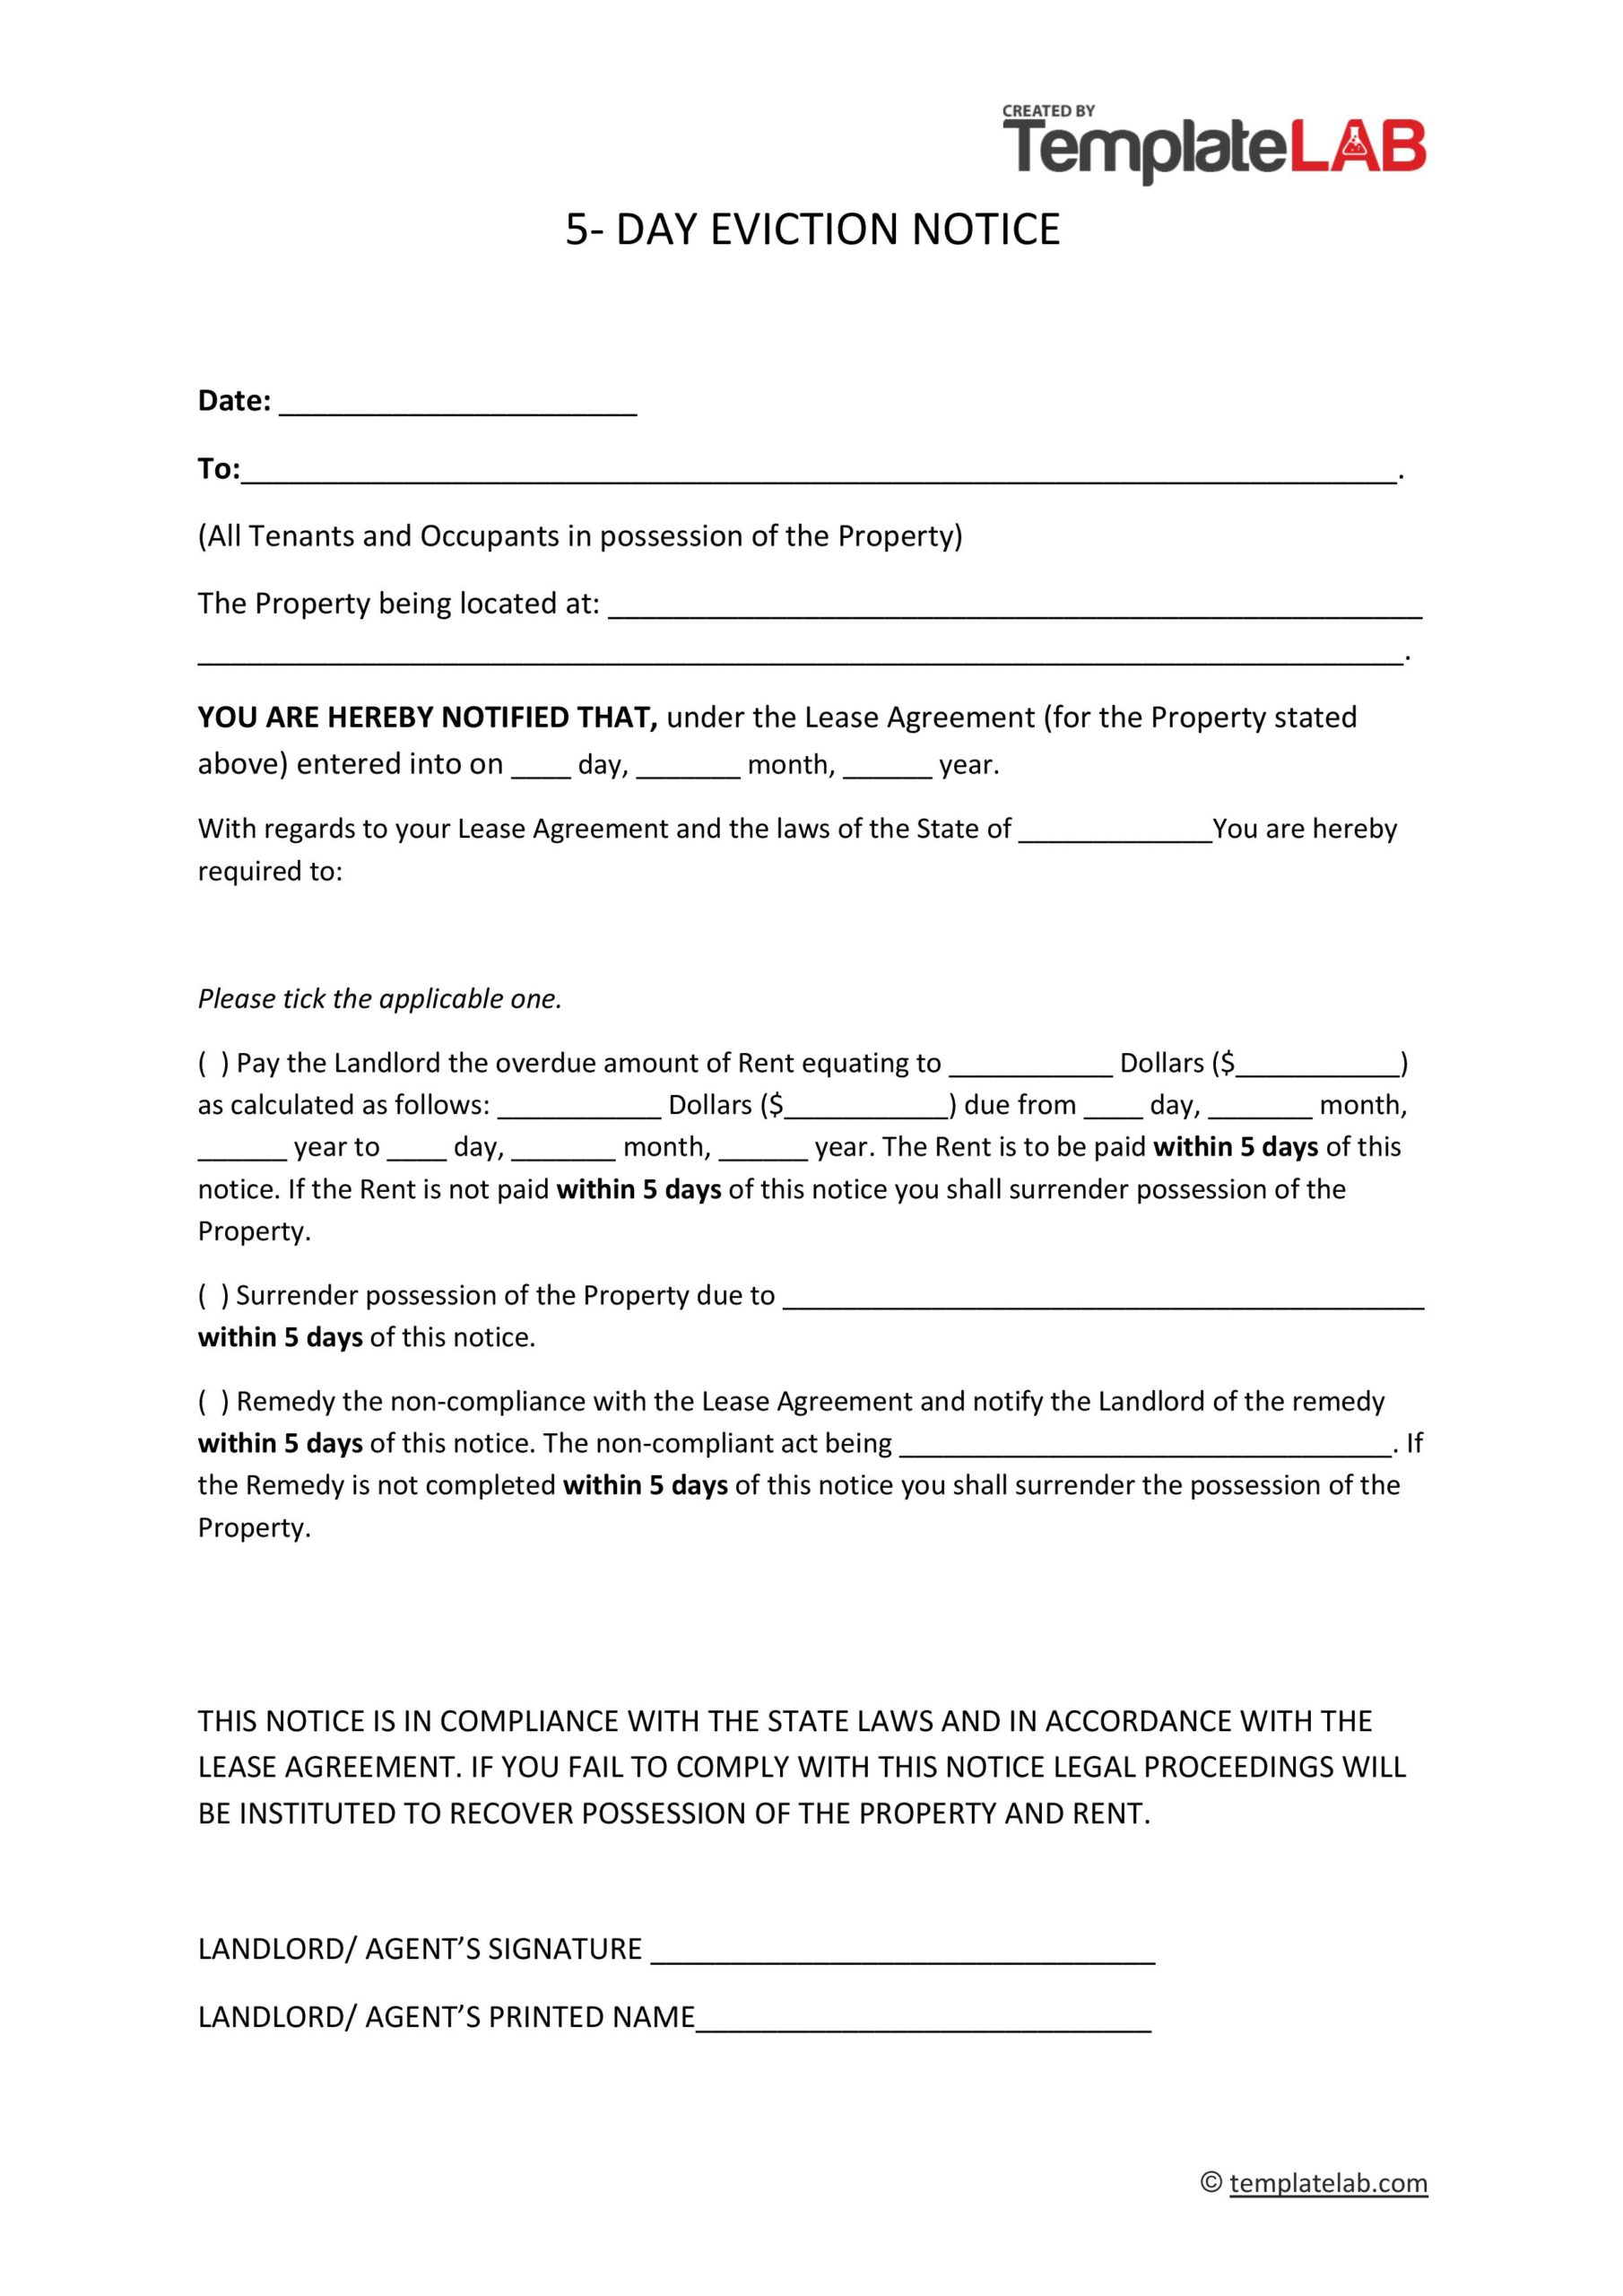 Free 5 Days Eviction Notice Template